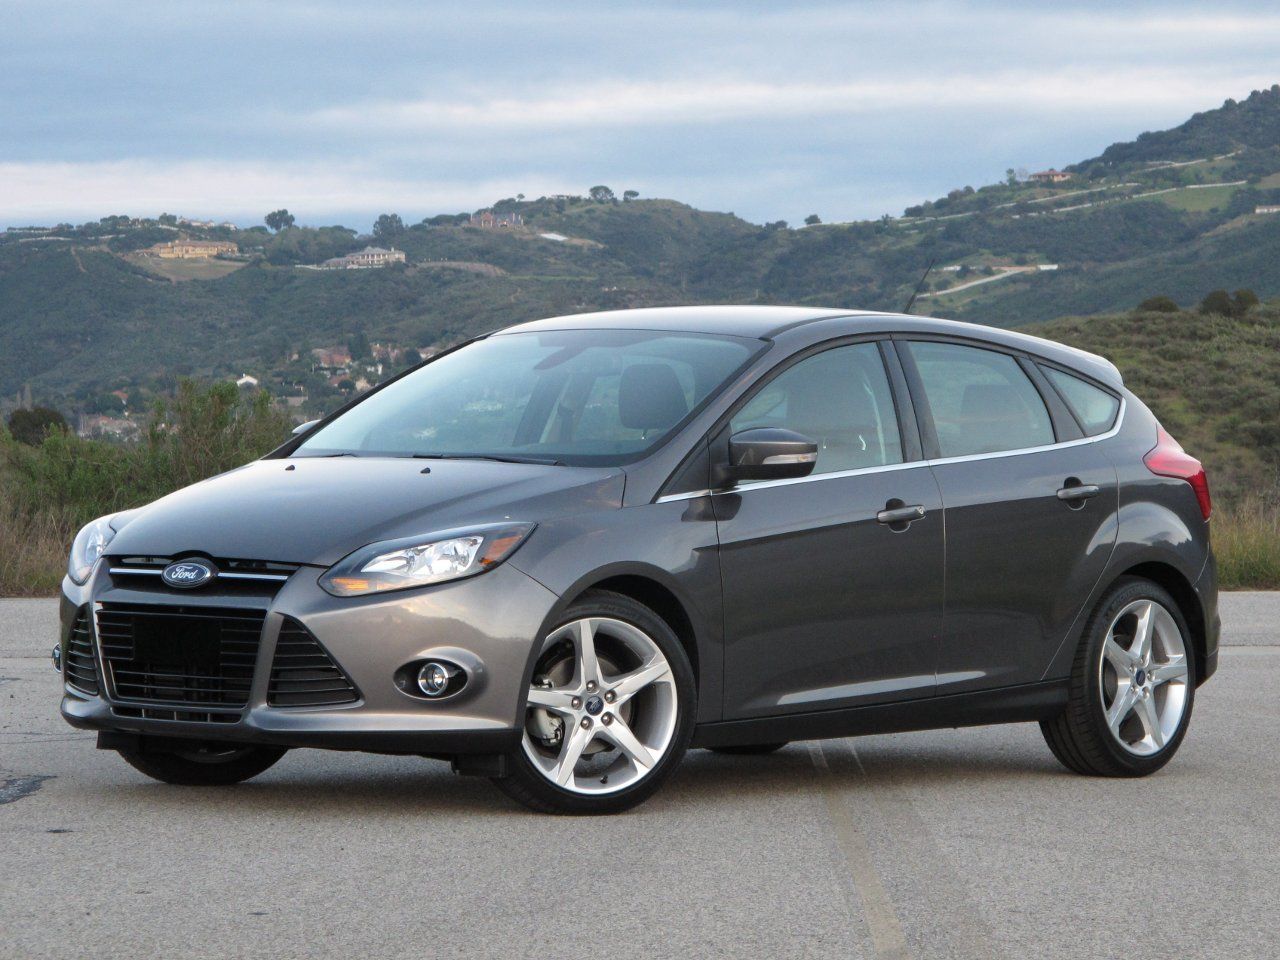 ford focus 2012 ford focus hatchback. Black Bedroom Furniture Sets. Home Design Ideas